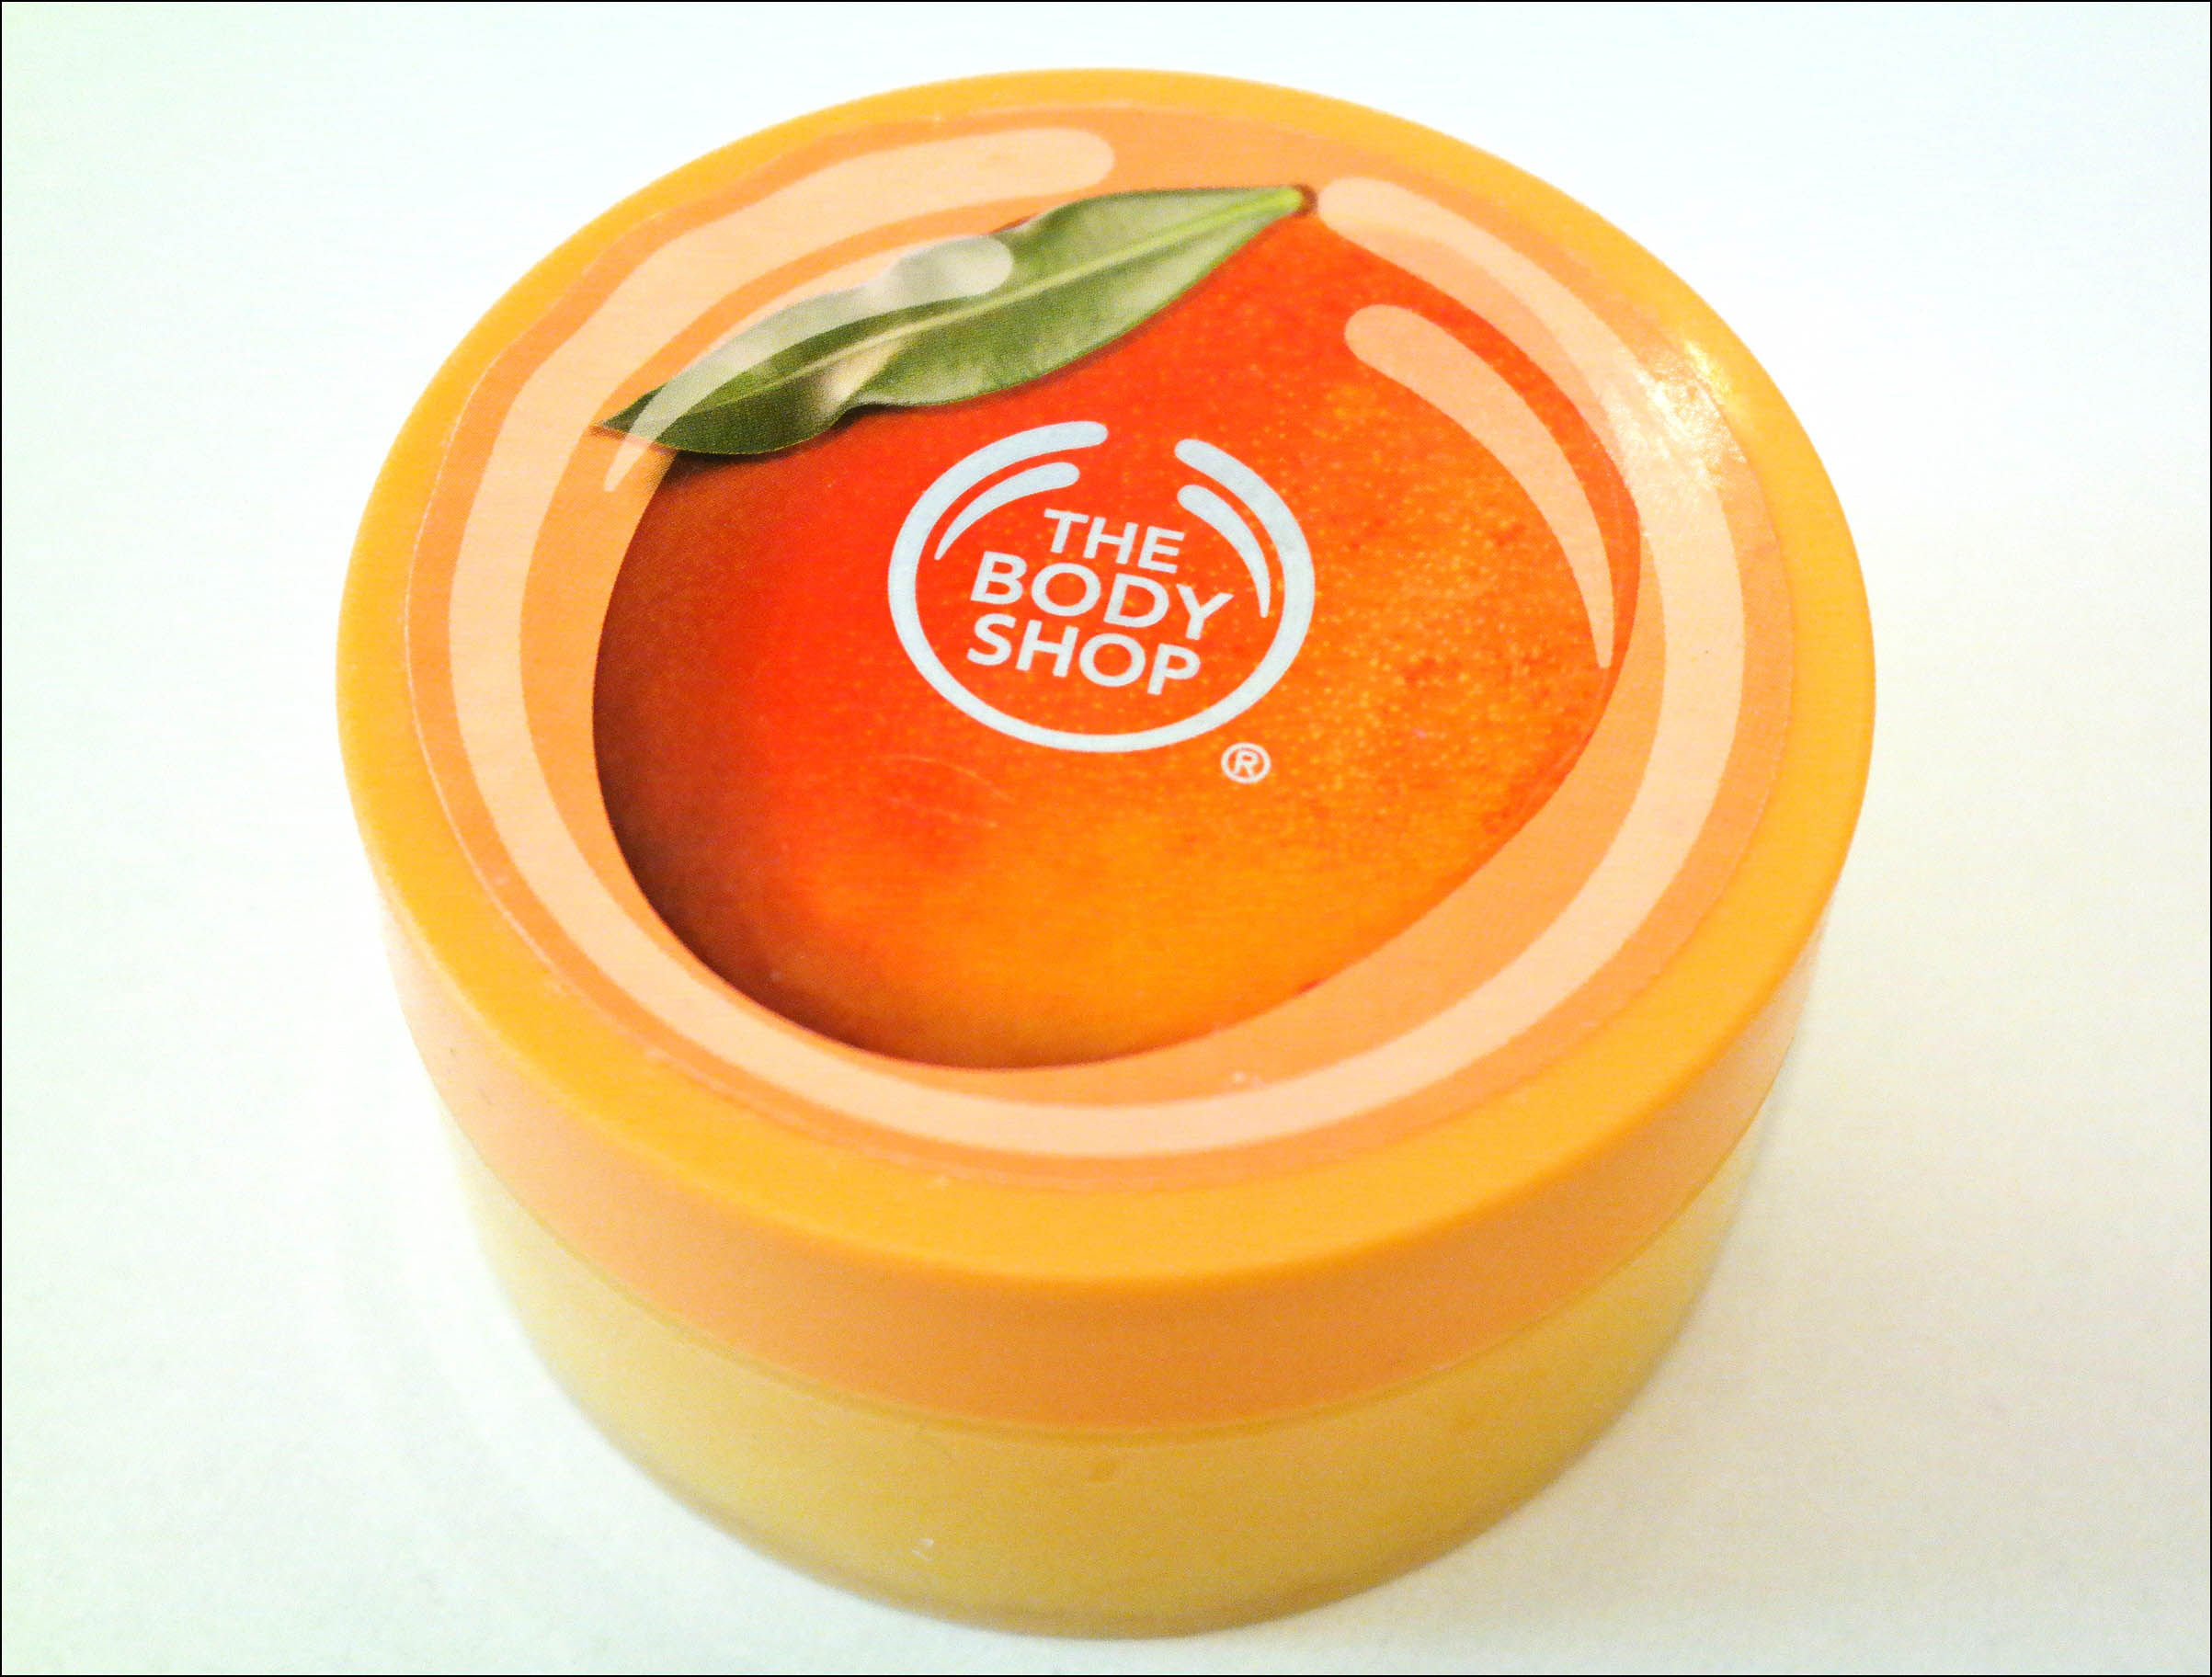 gommage, gommages corps, the body shop, gommage mangue